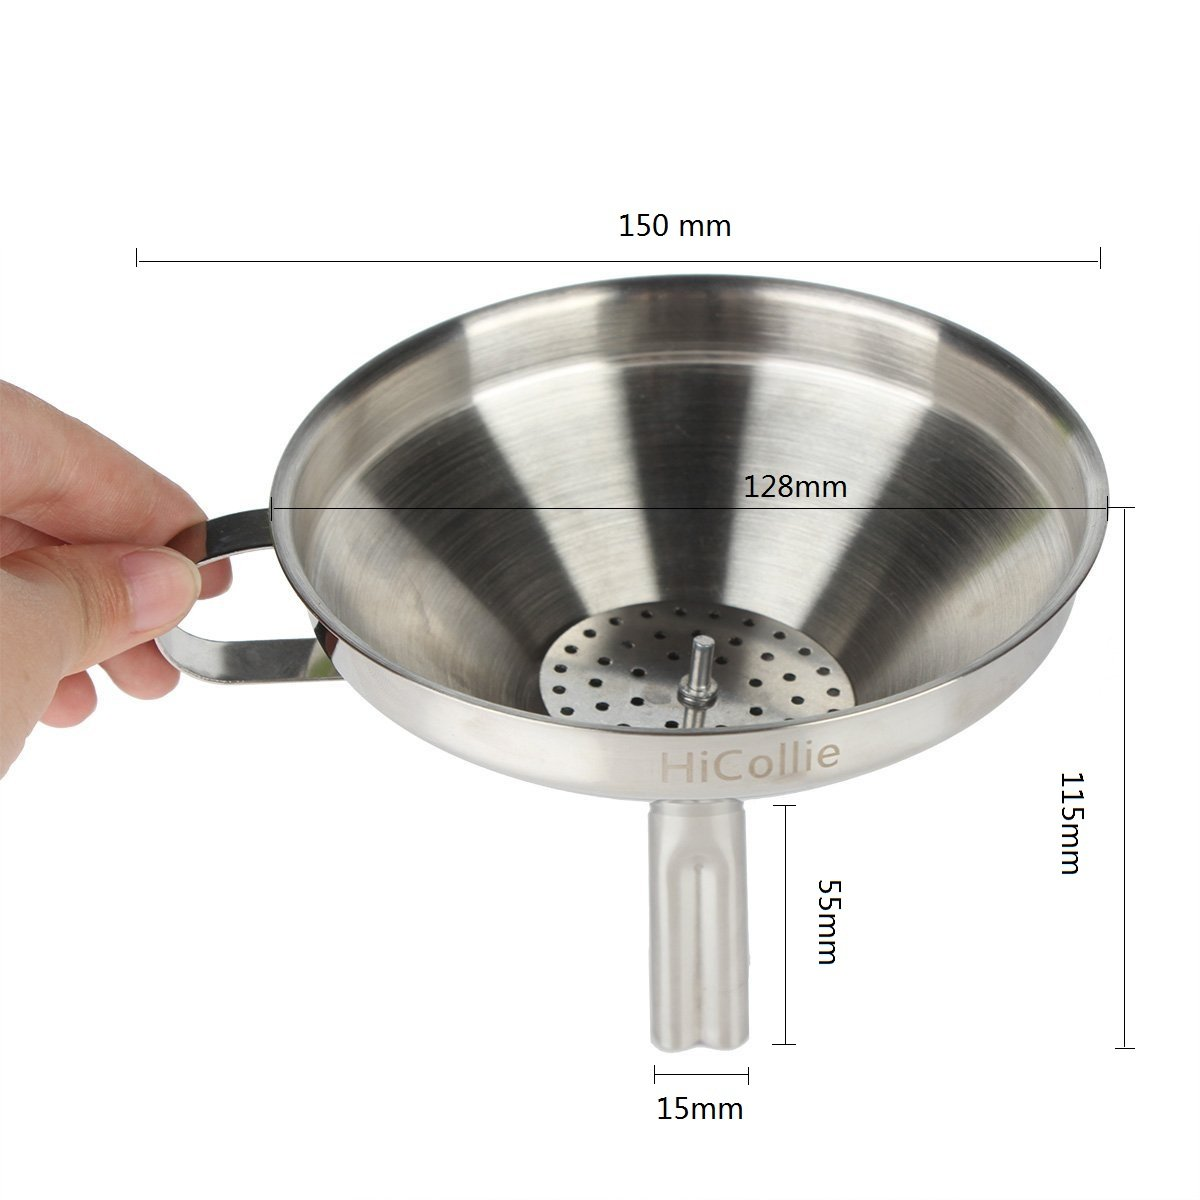 Amazon.com: HiCollie Kitchen Stainless Steel Funnel with Detachable ...